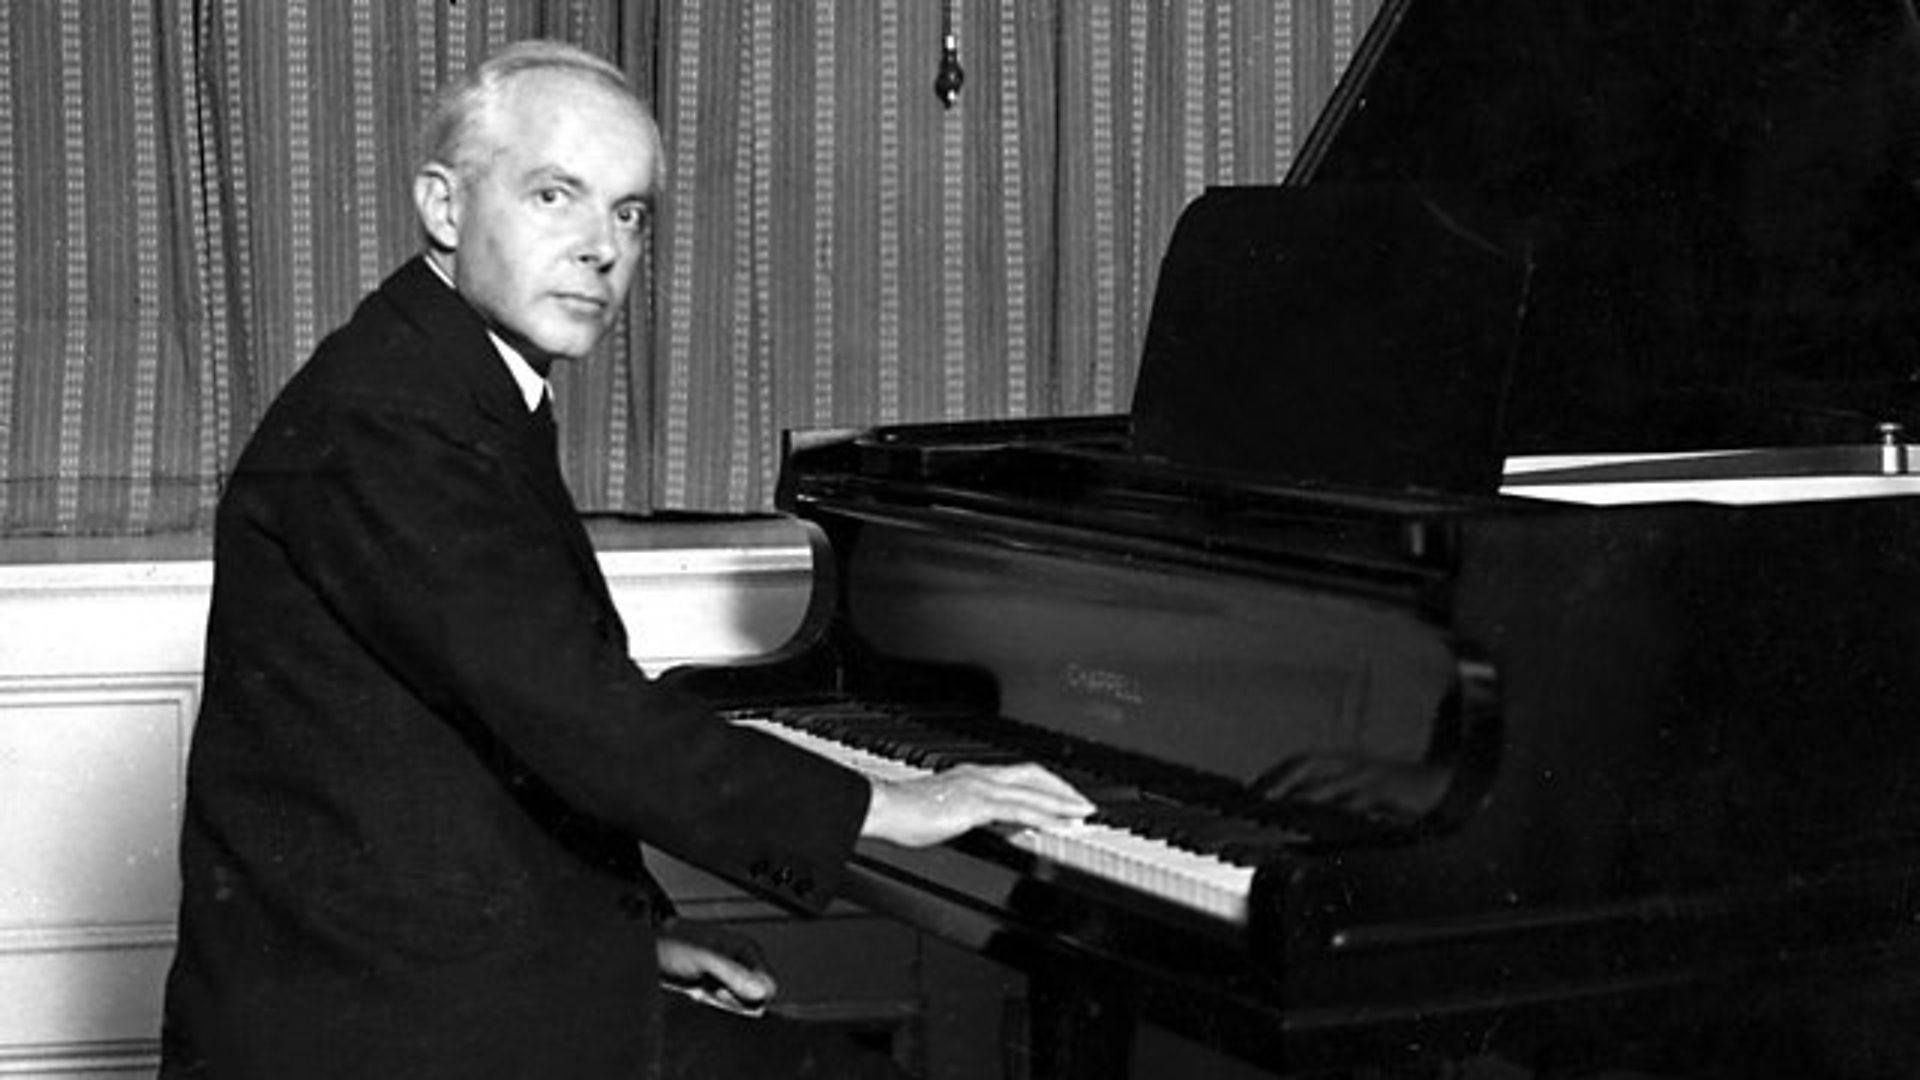 Bartók's Suite, Op. 14: The Percussive Piano